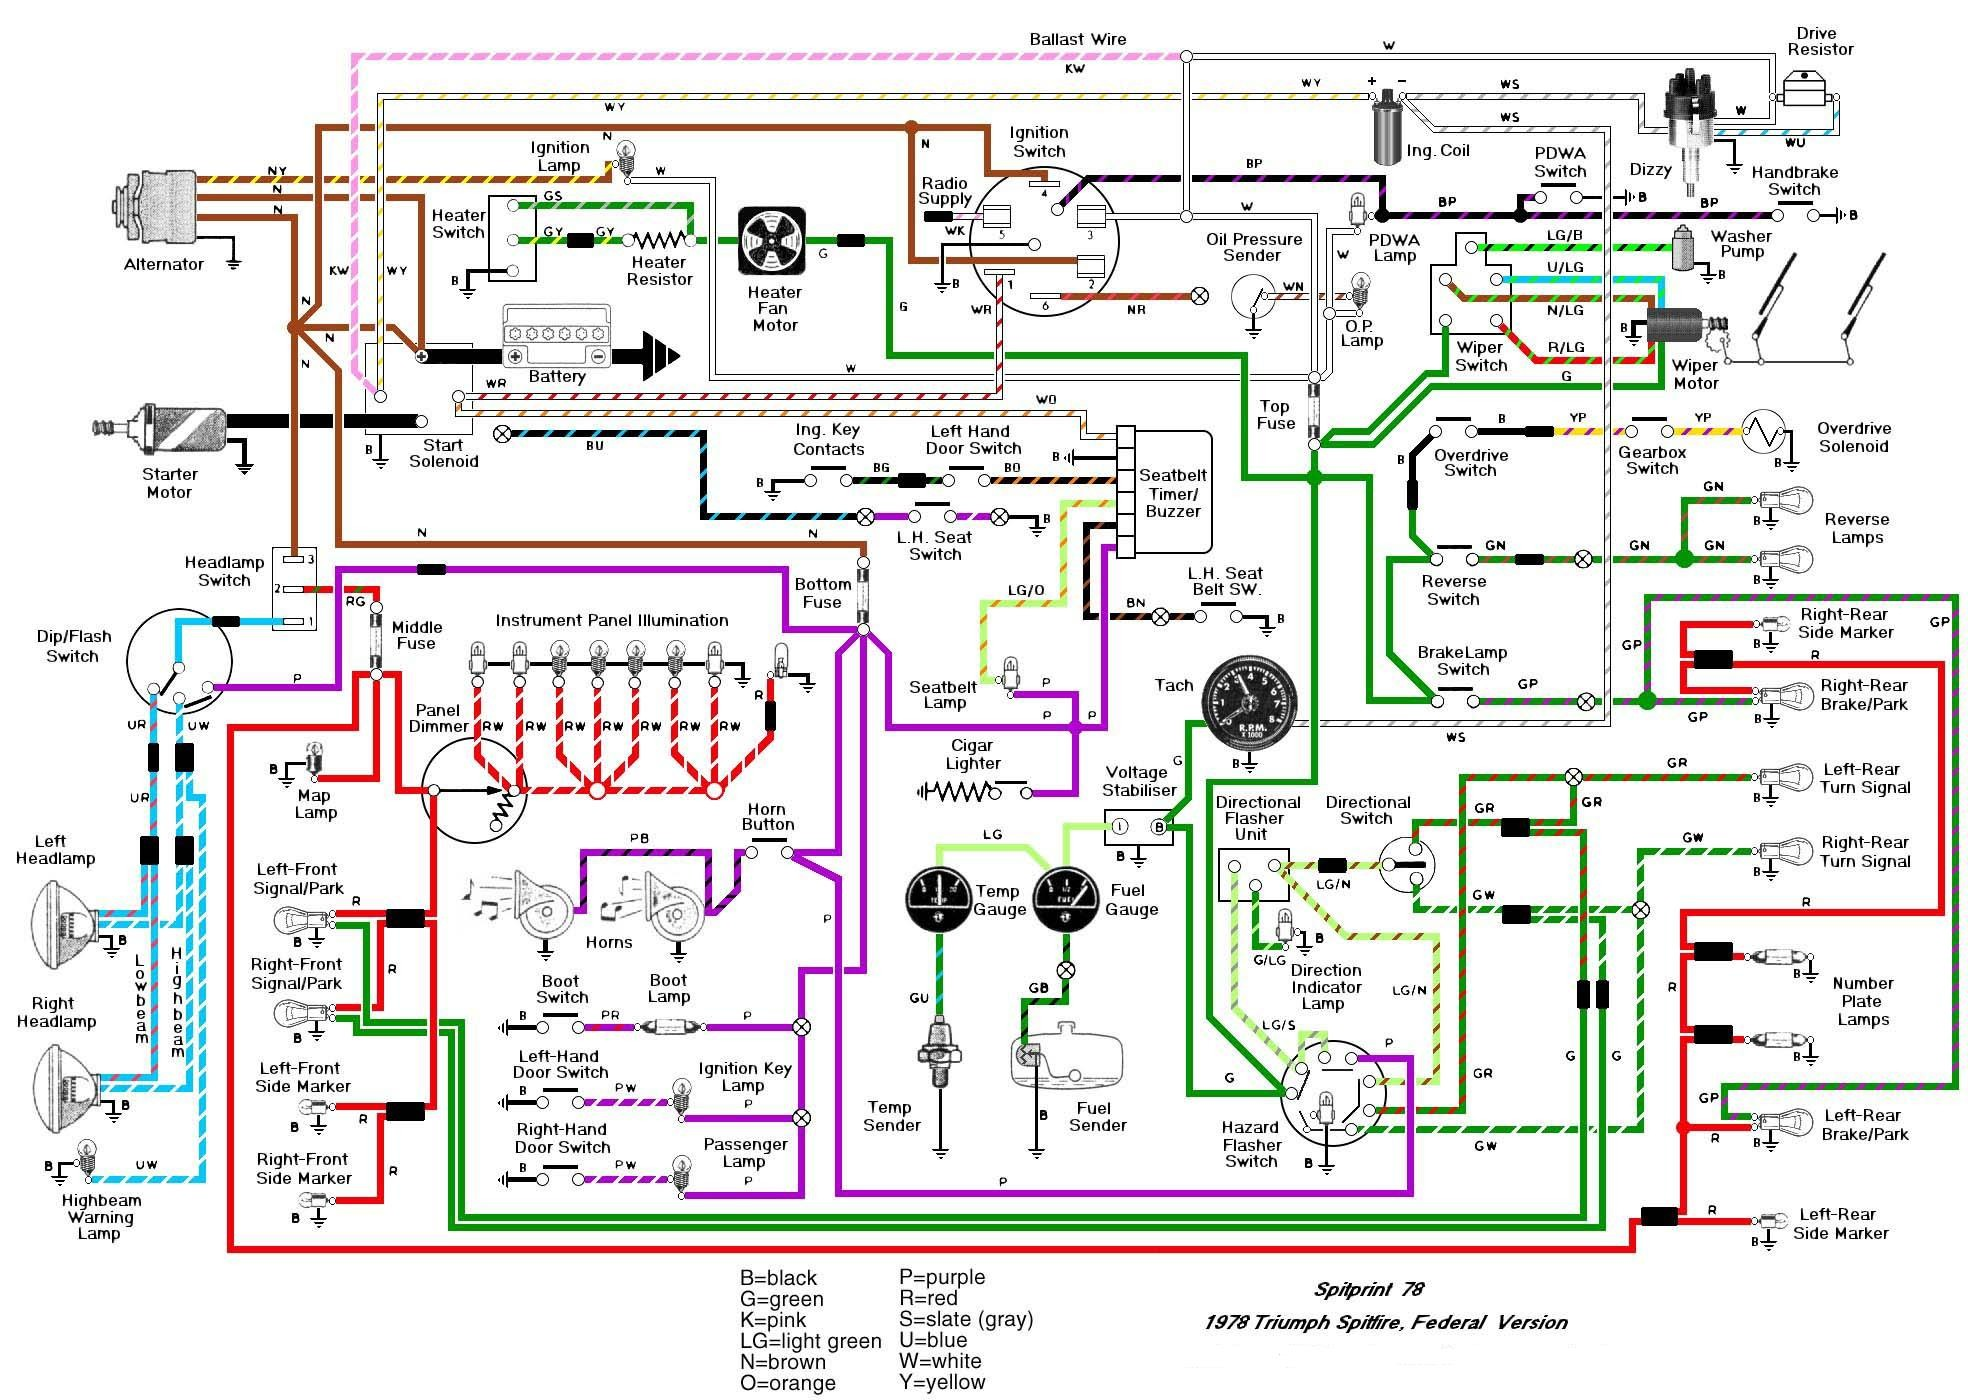 car auto wiring diagrams electrical diagrams forum u2022 rh woollenkiwi co uk auto electrical wiring diagrams auto electrical wiring diagrams